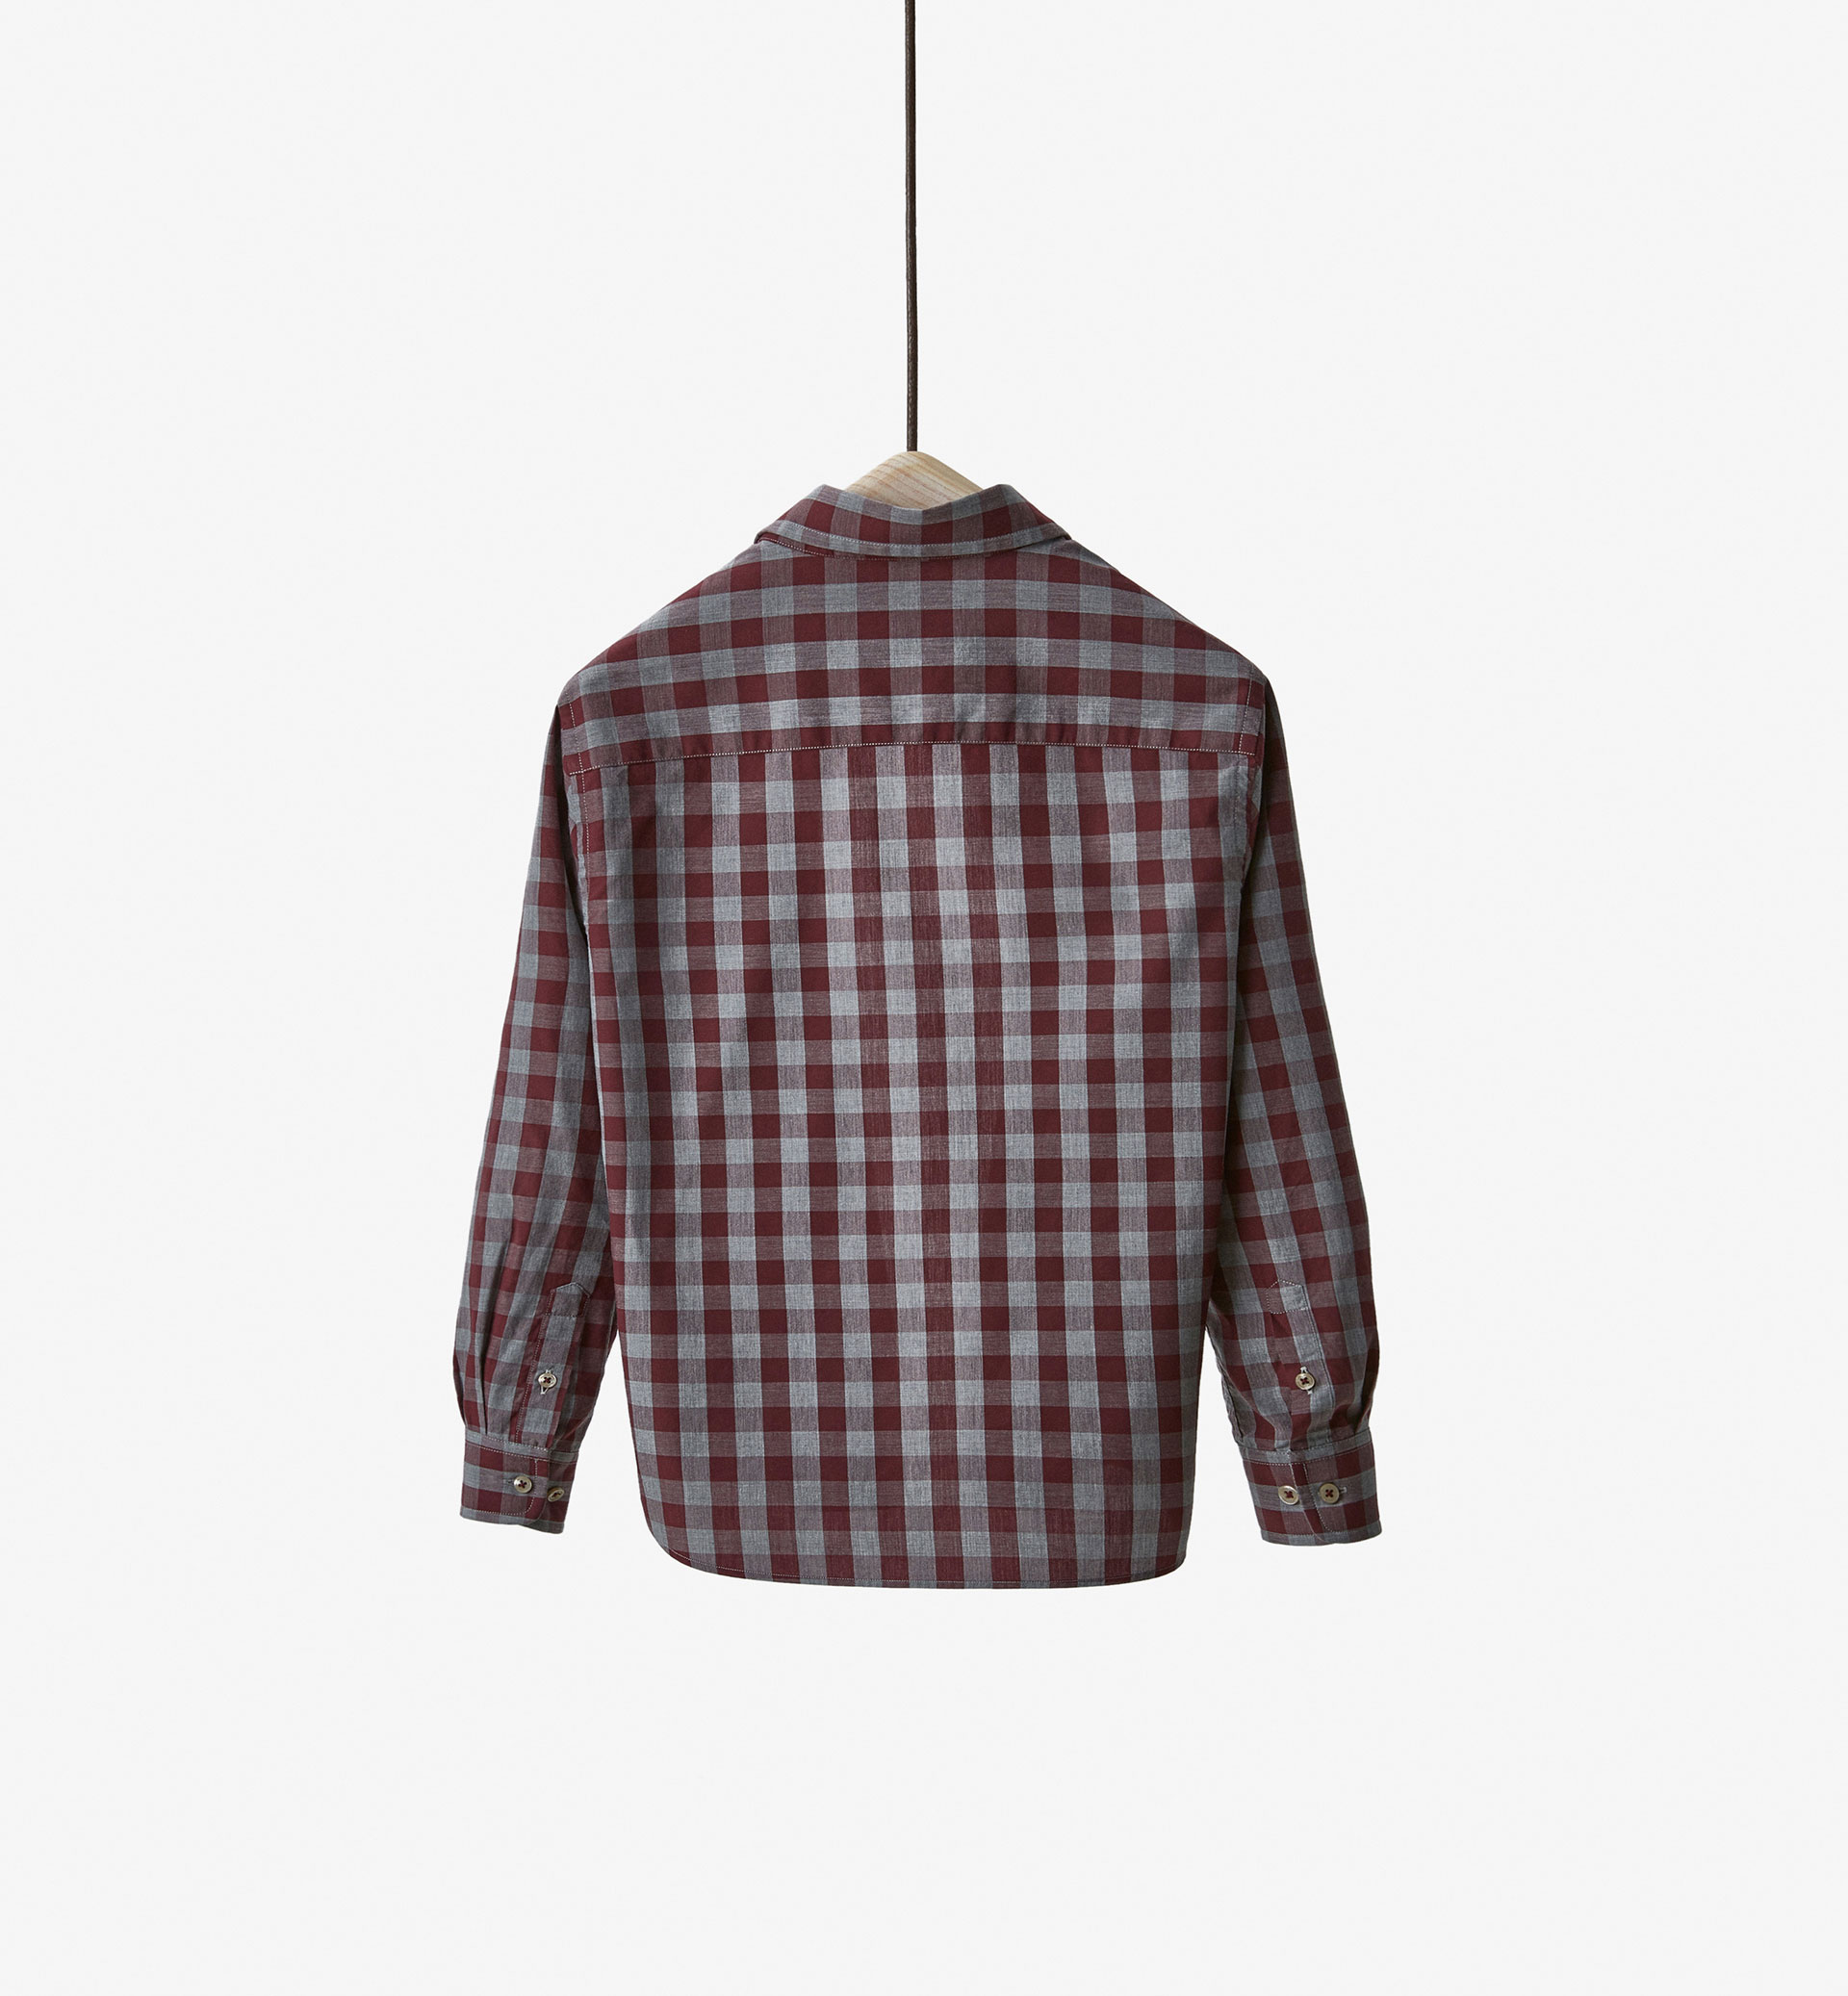 LIMITED EDITION GINGHAM CHECK SHIRT